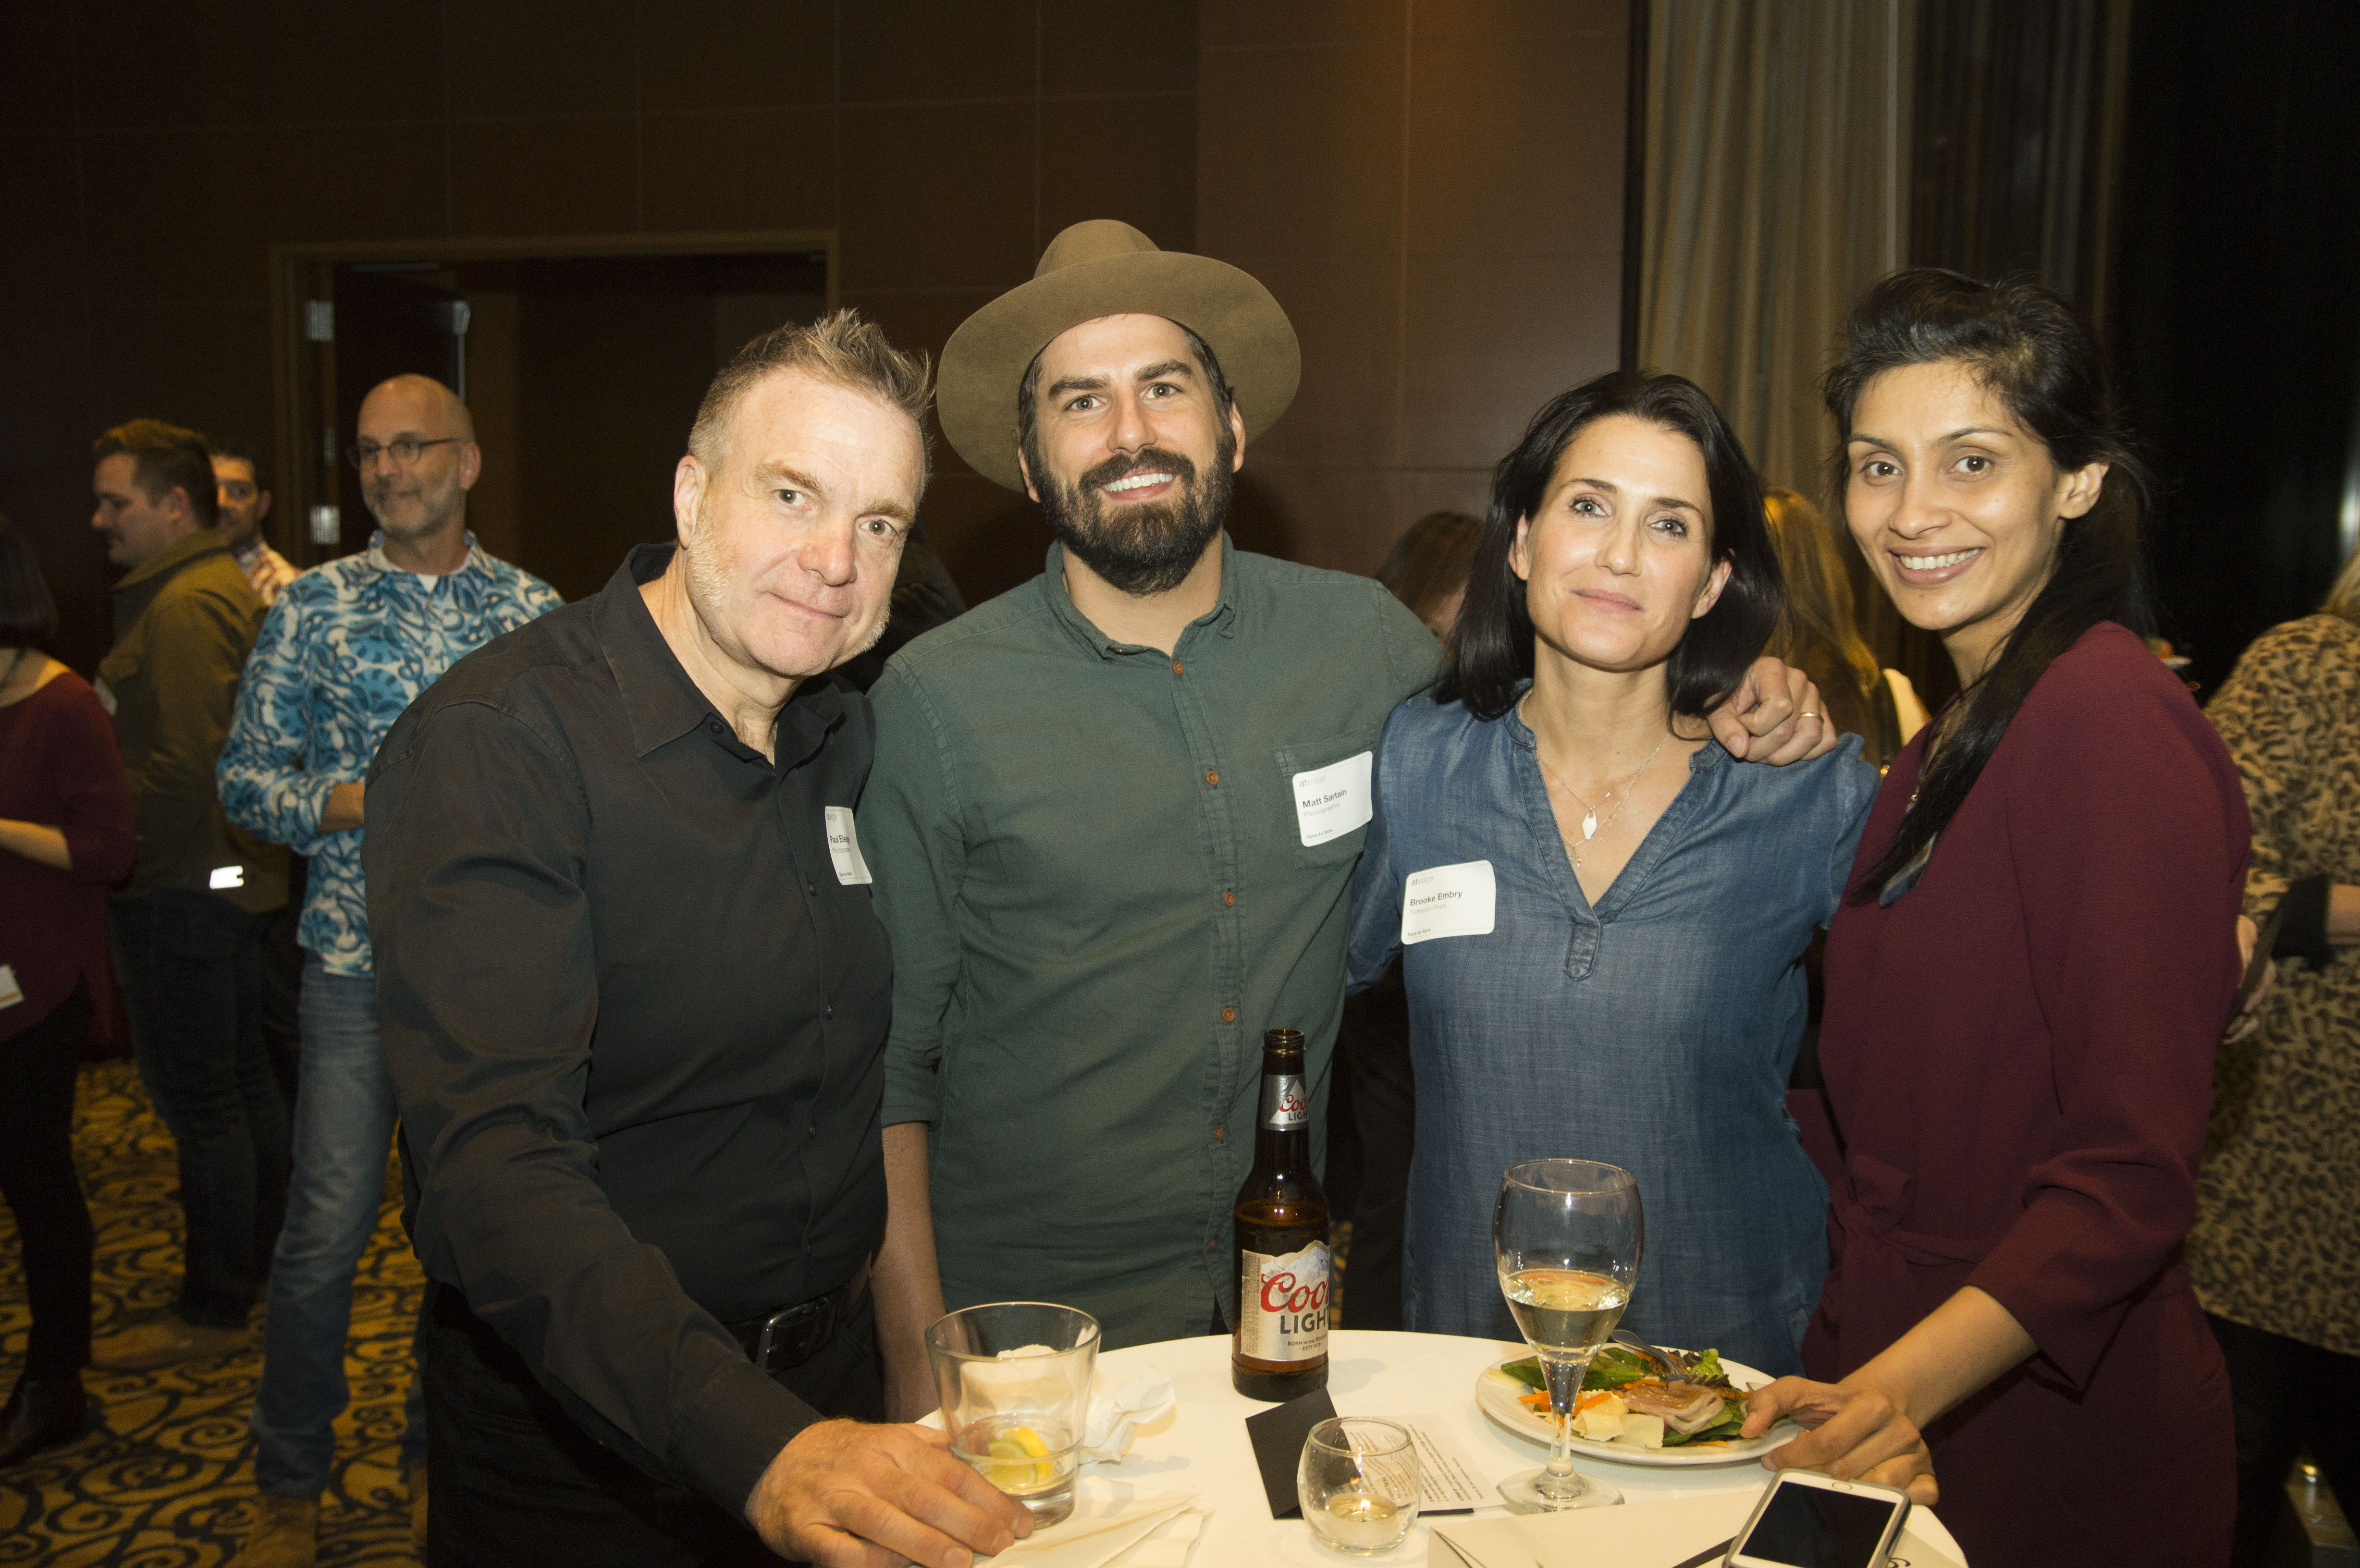 L to R: Photographers (Dana Hursey in the background) Paul Elledge, Matt Sartain & Brooke Embry with Puja Shah of Carmicheal Lynch